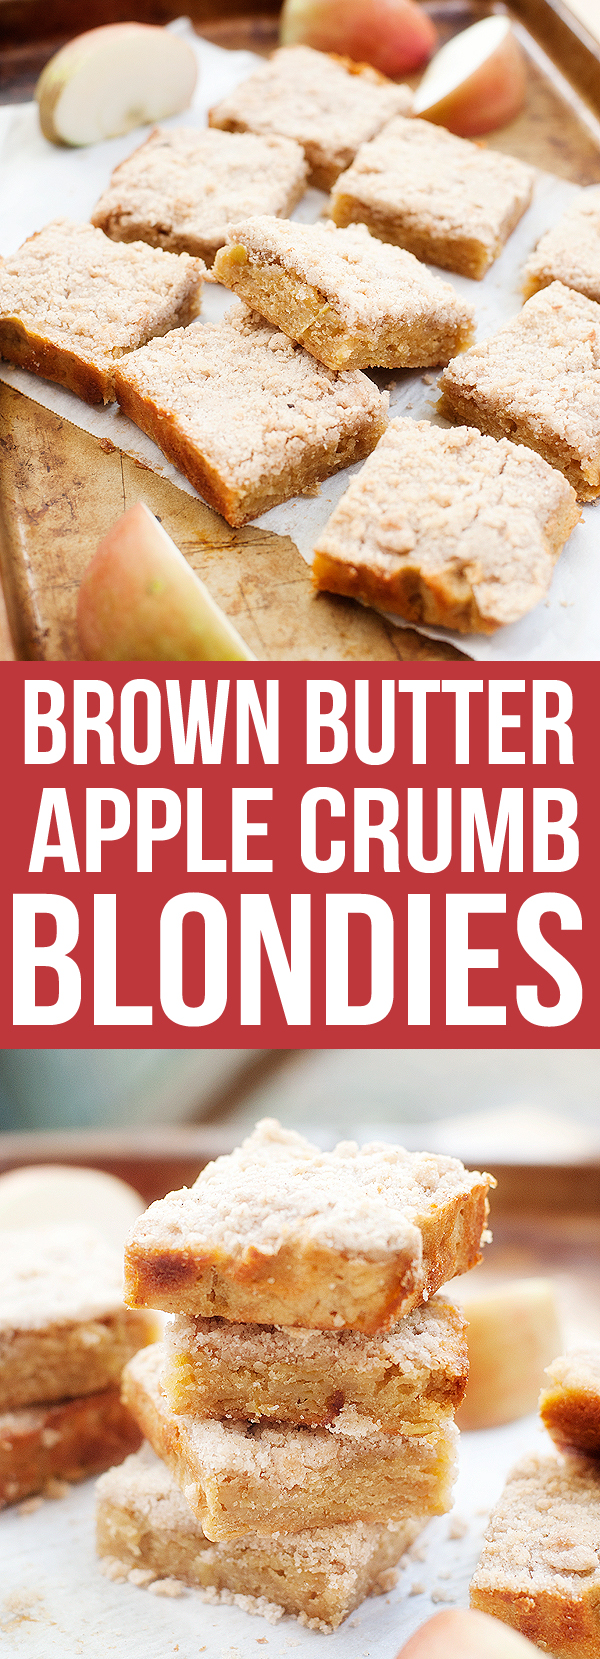 Brown Butter Apple Crumb Blondies